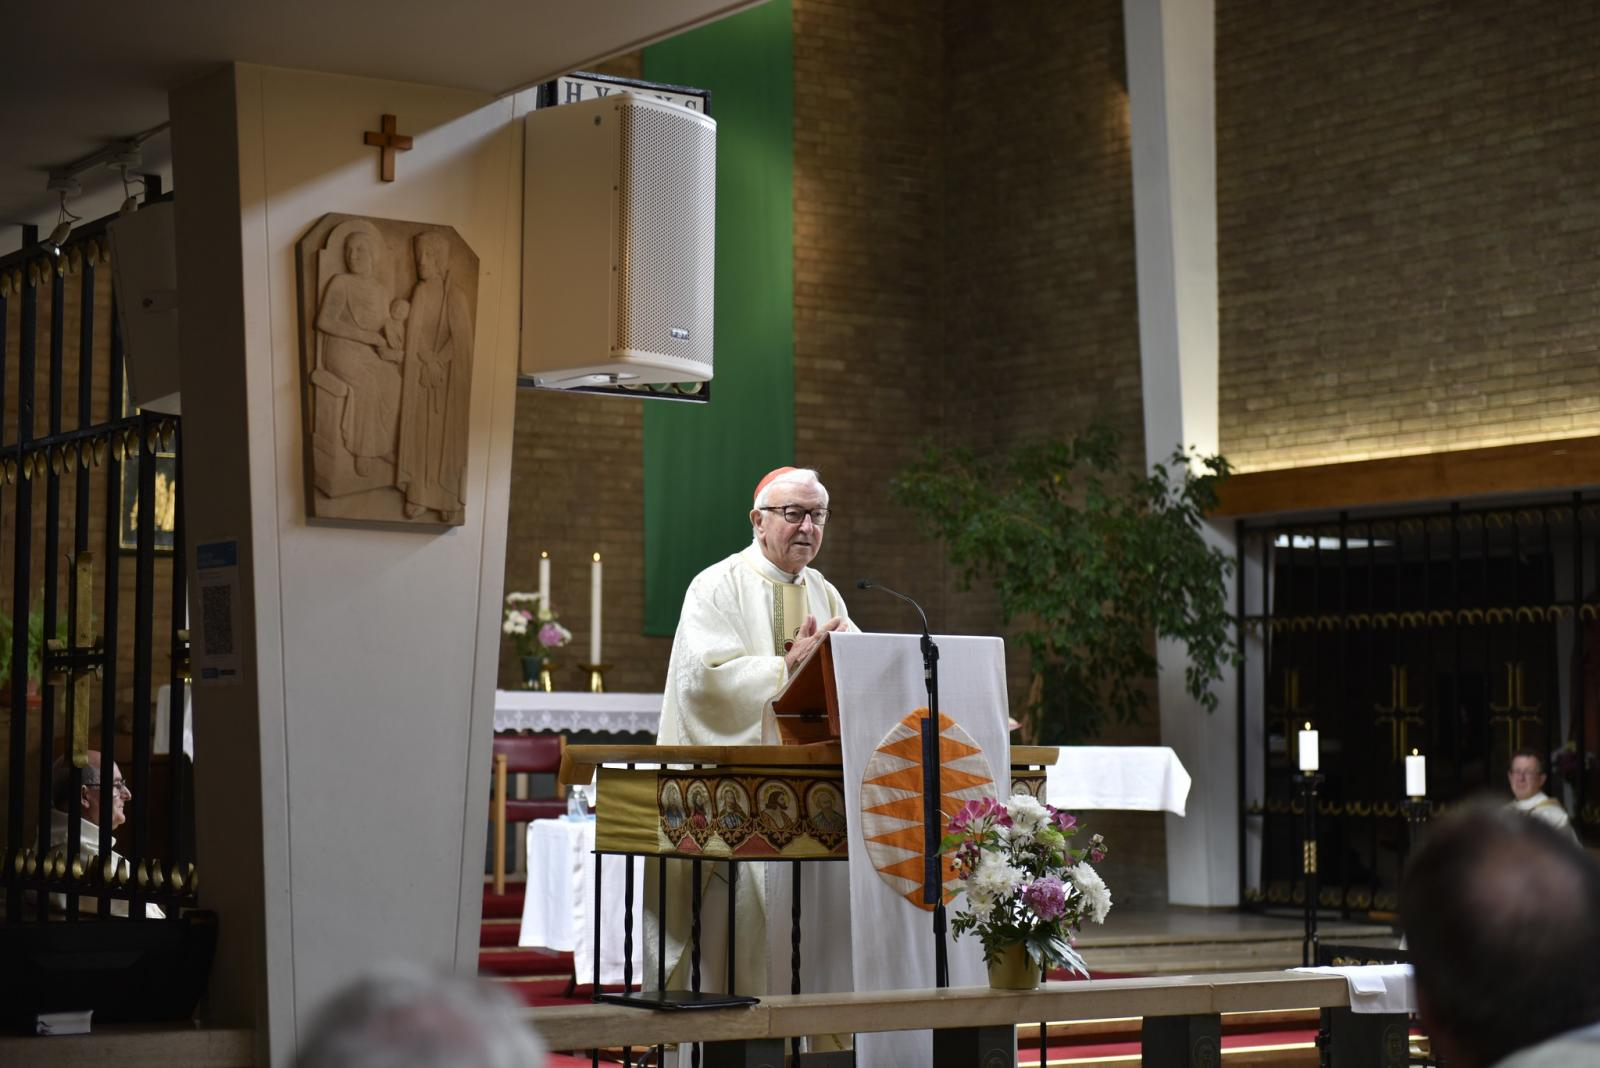 Cardinal thanks priests for their ministry during 'difficult and demanding times' - Diocese of Westminster